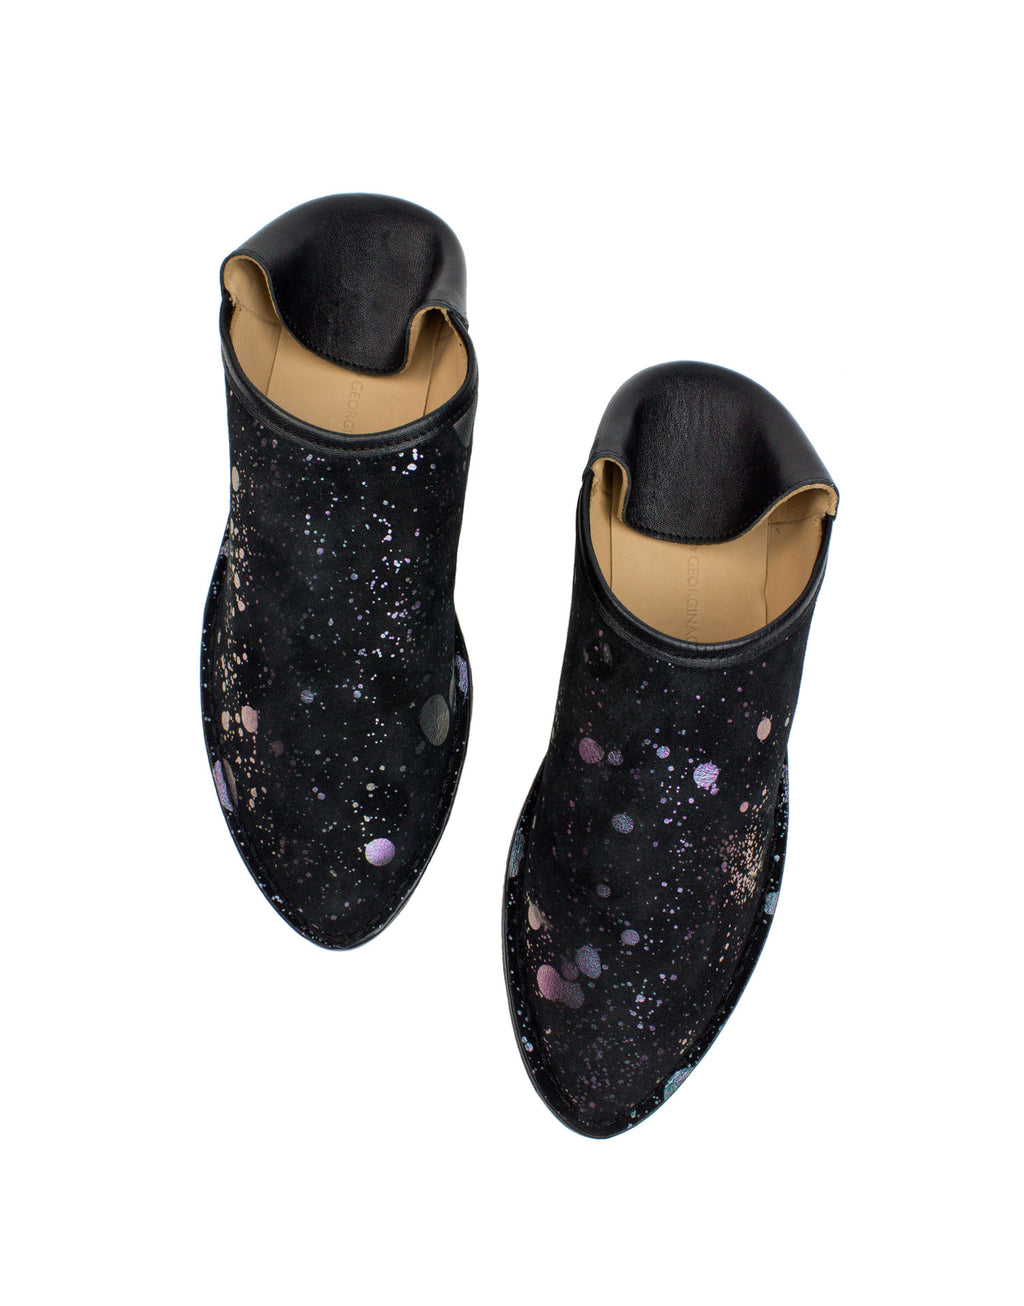 Black suede indoor outdoor slipper with unique splash artwork by designer Georgina Goodman